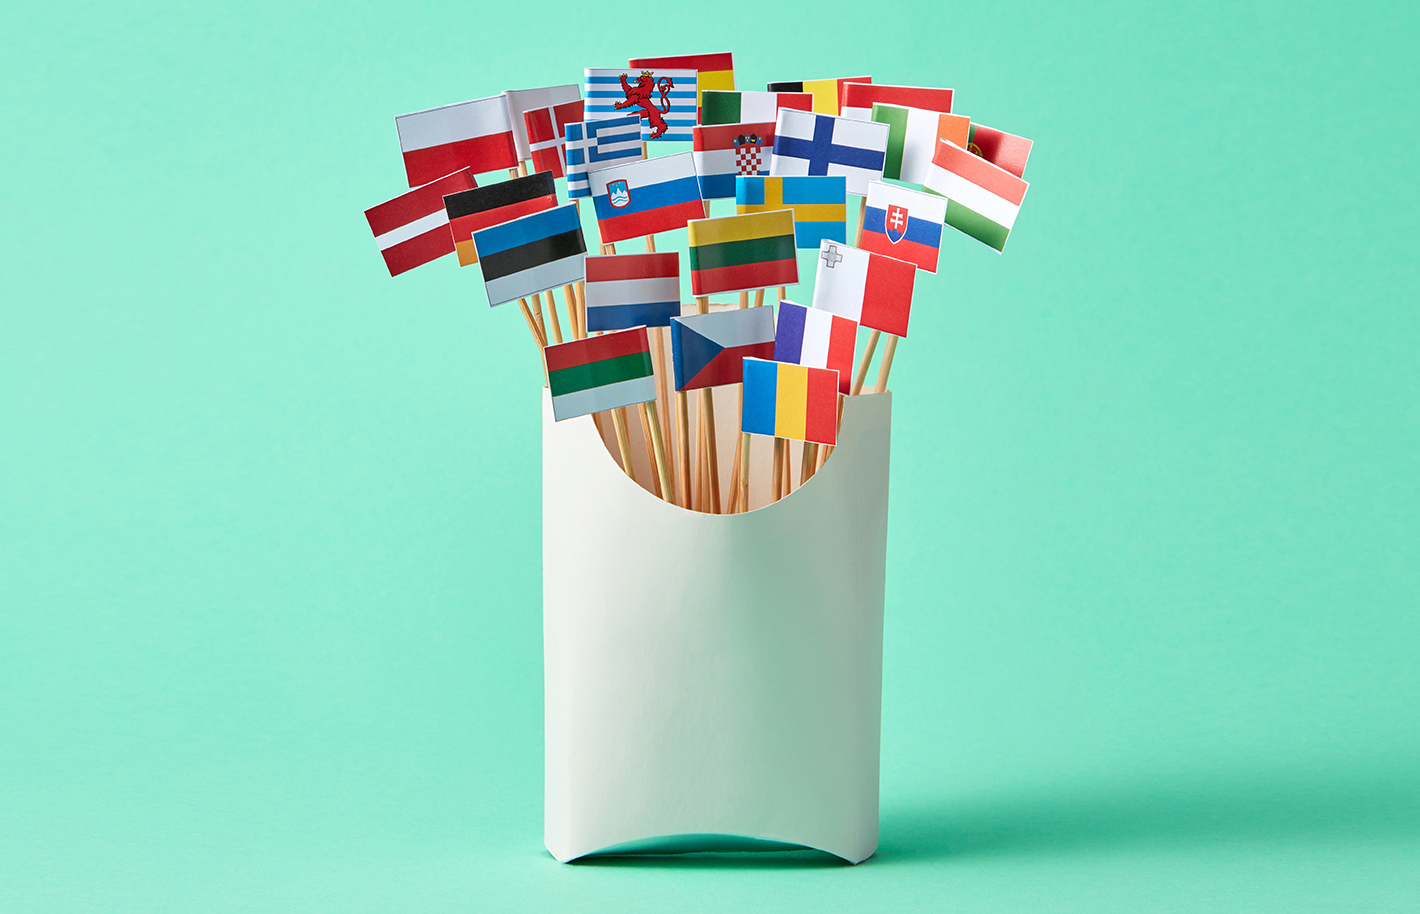 A collection of different national flags